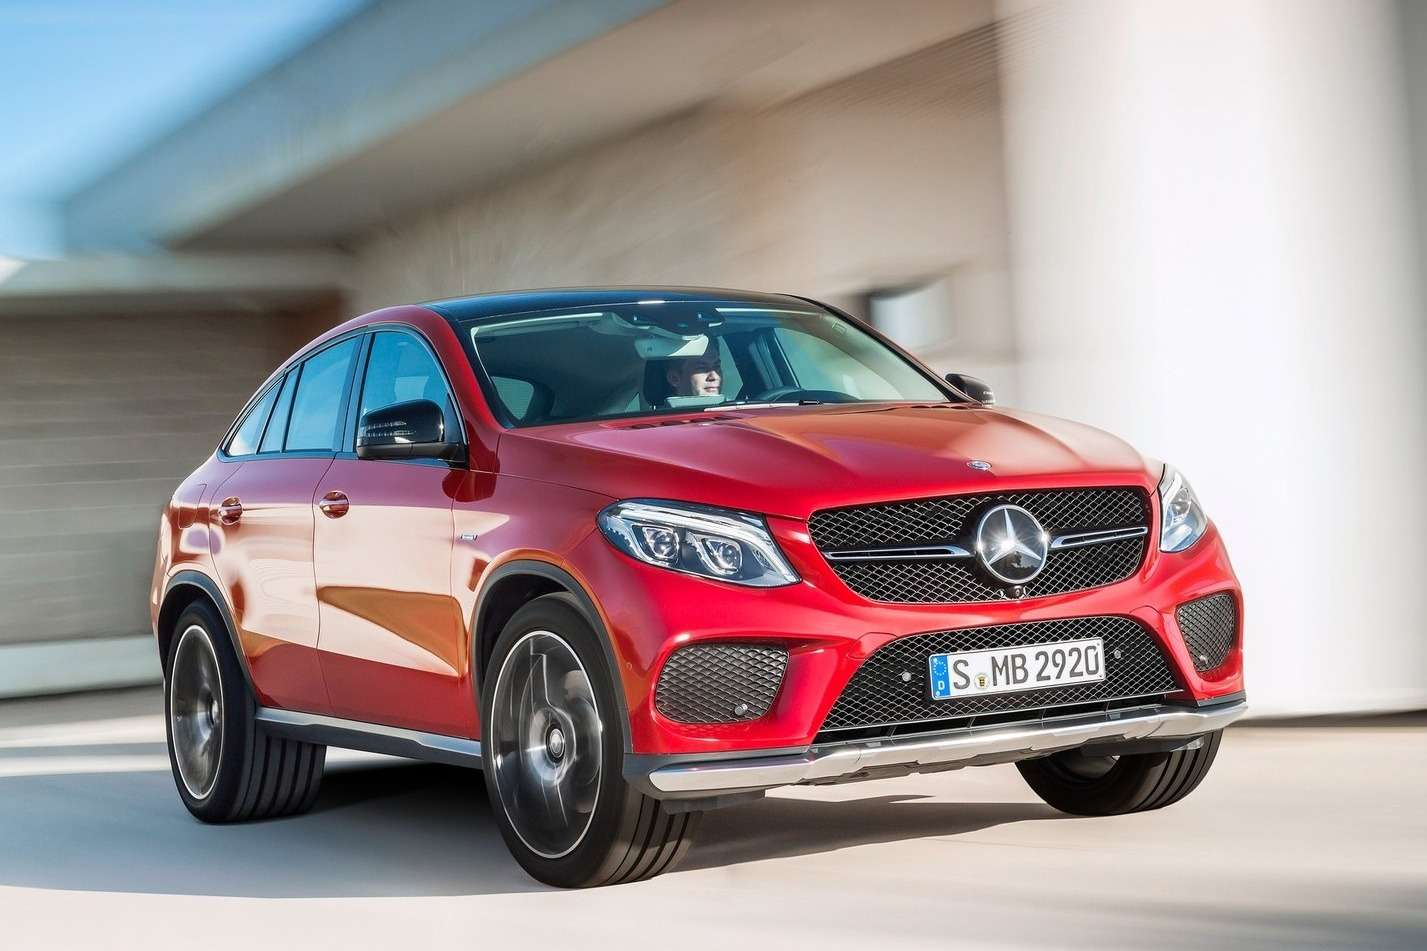 Mercedes-Benz-GLE450_AMG_Coupe_2016_1600x1200_wallpaper_05